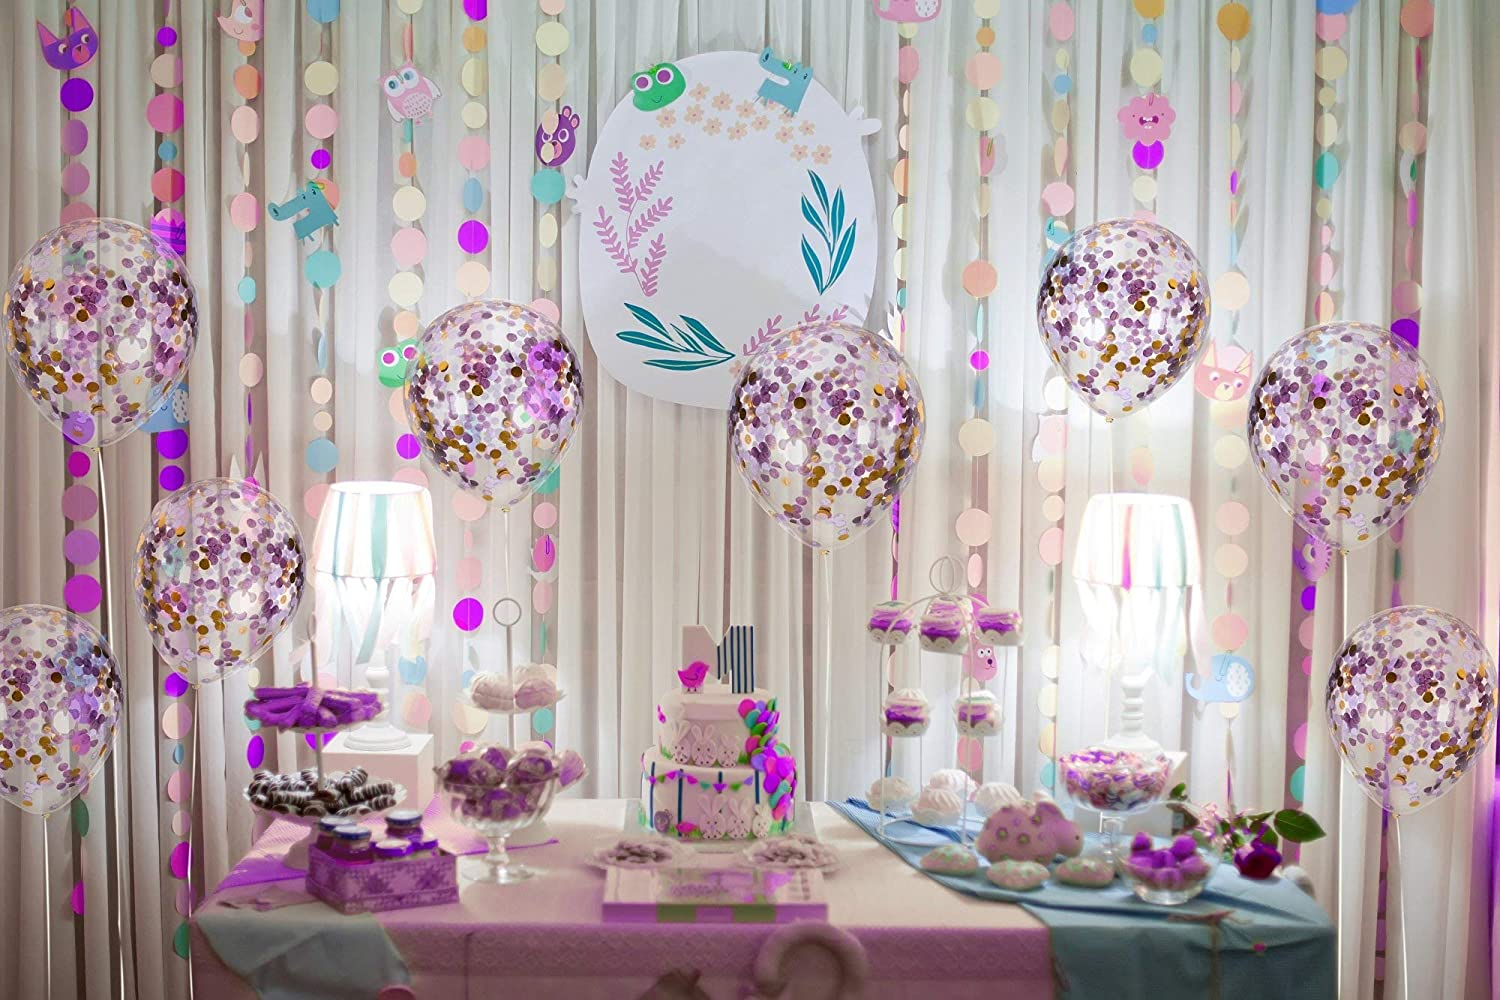 ec538af40 Amazon.com: Treasures Gifted Unicorn Purple and Gold Confetti Balloons  Bouquet for Bridal Shower Mermaid Birthday Wedding Graduation Anniversary  Party ...